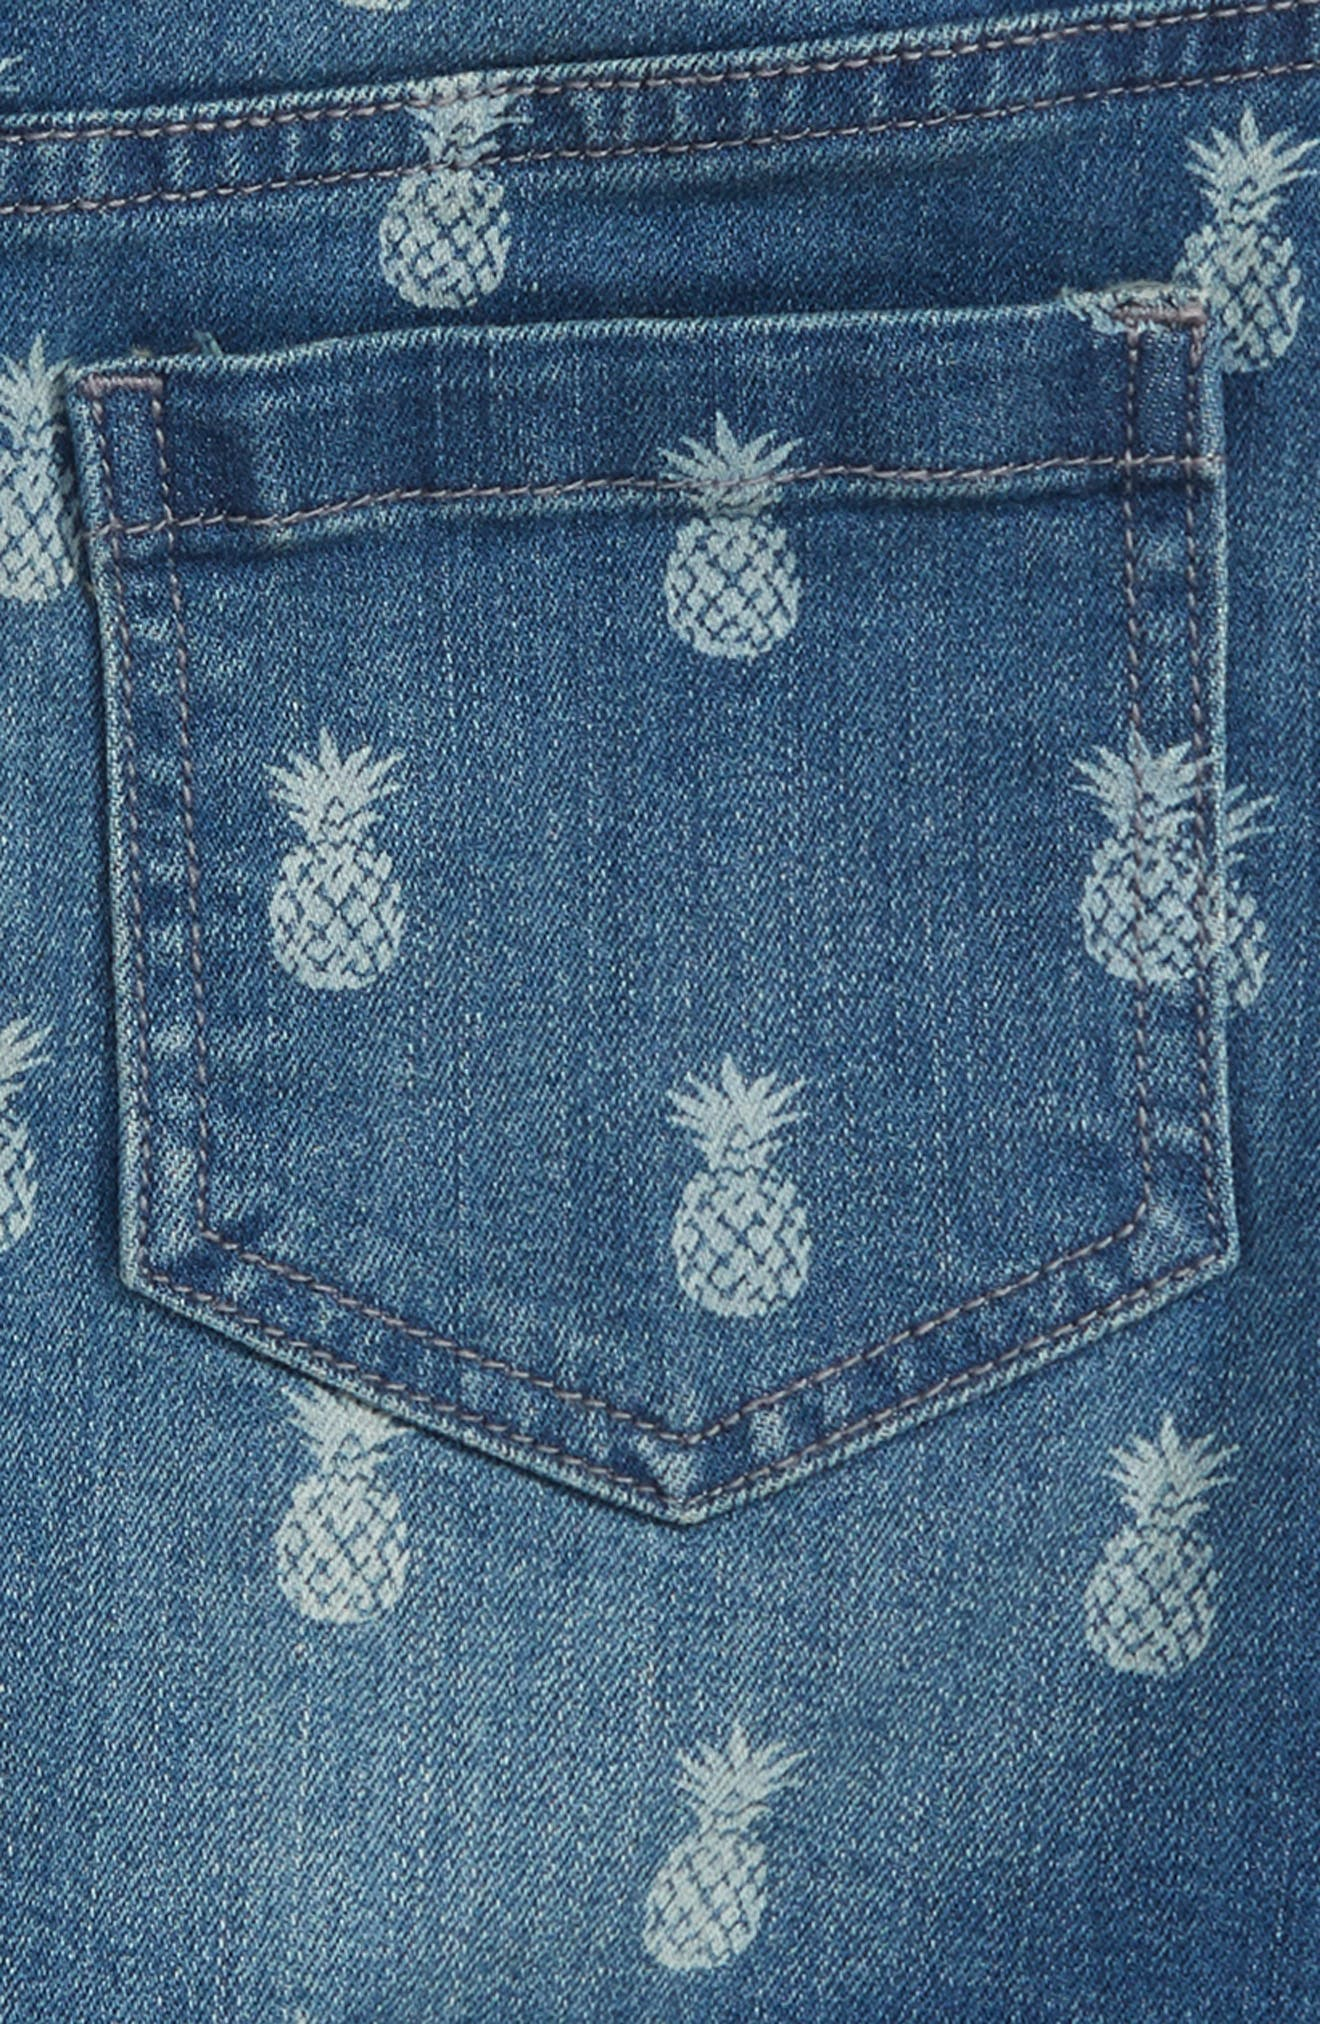 Pineapple Print Denim Skirt,                             Alternate thumbnail 3, color,                             400